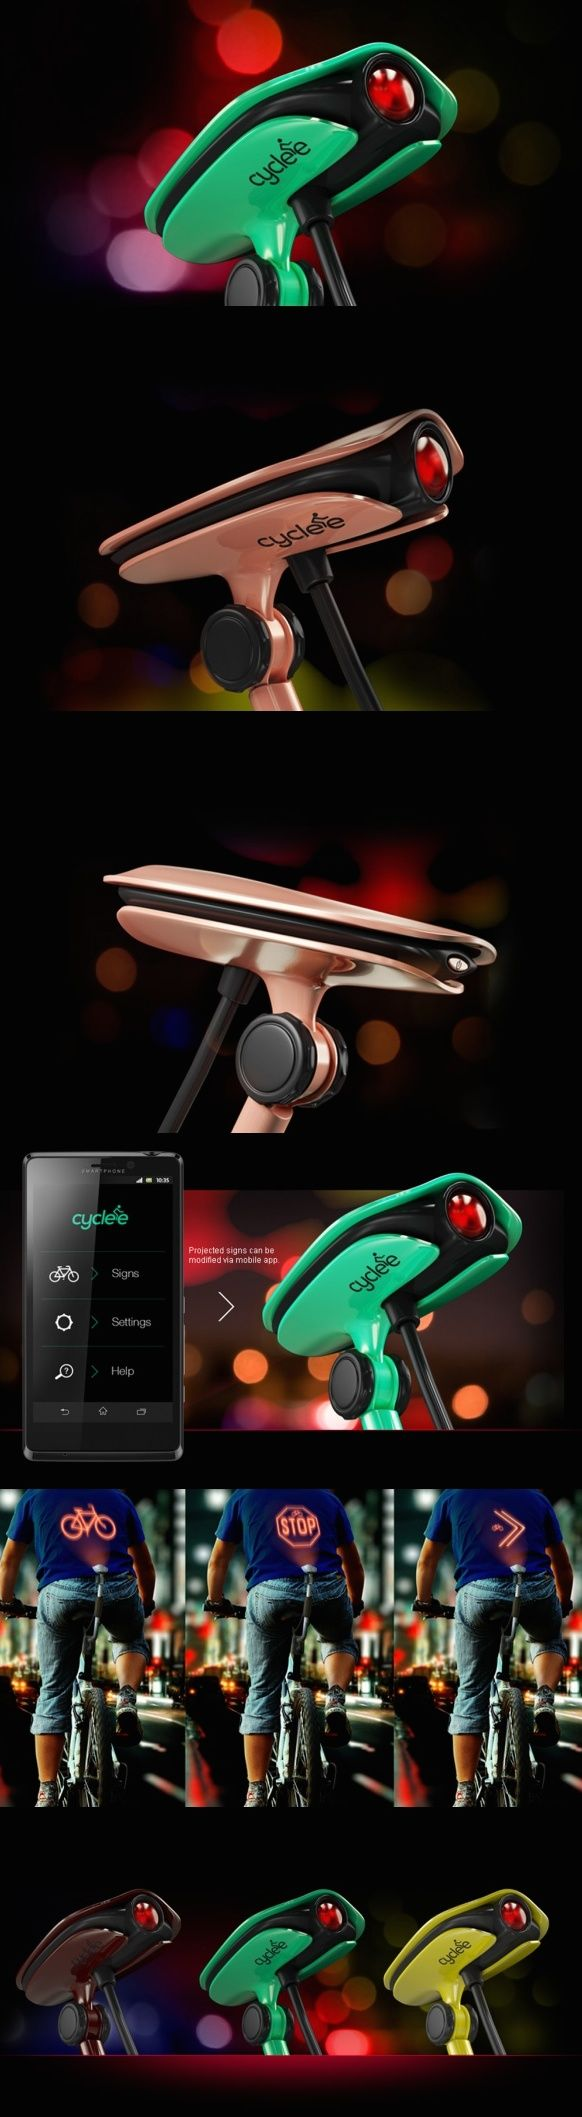 The #Cyclee is a pretty nifty projector that uses your back as a canvas to project signals and relevant warning signs to alert the person riding/driving/locomoting behind you. Pair it with its mobile app and you're set to go. Cyclee also lends itself to e